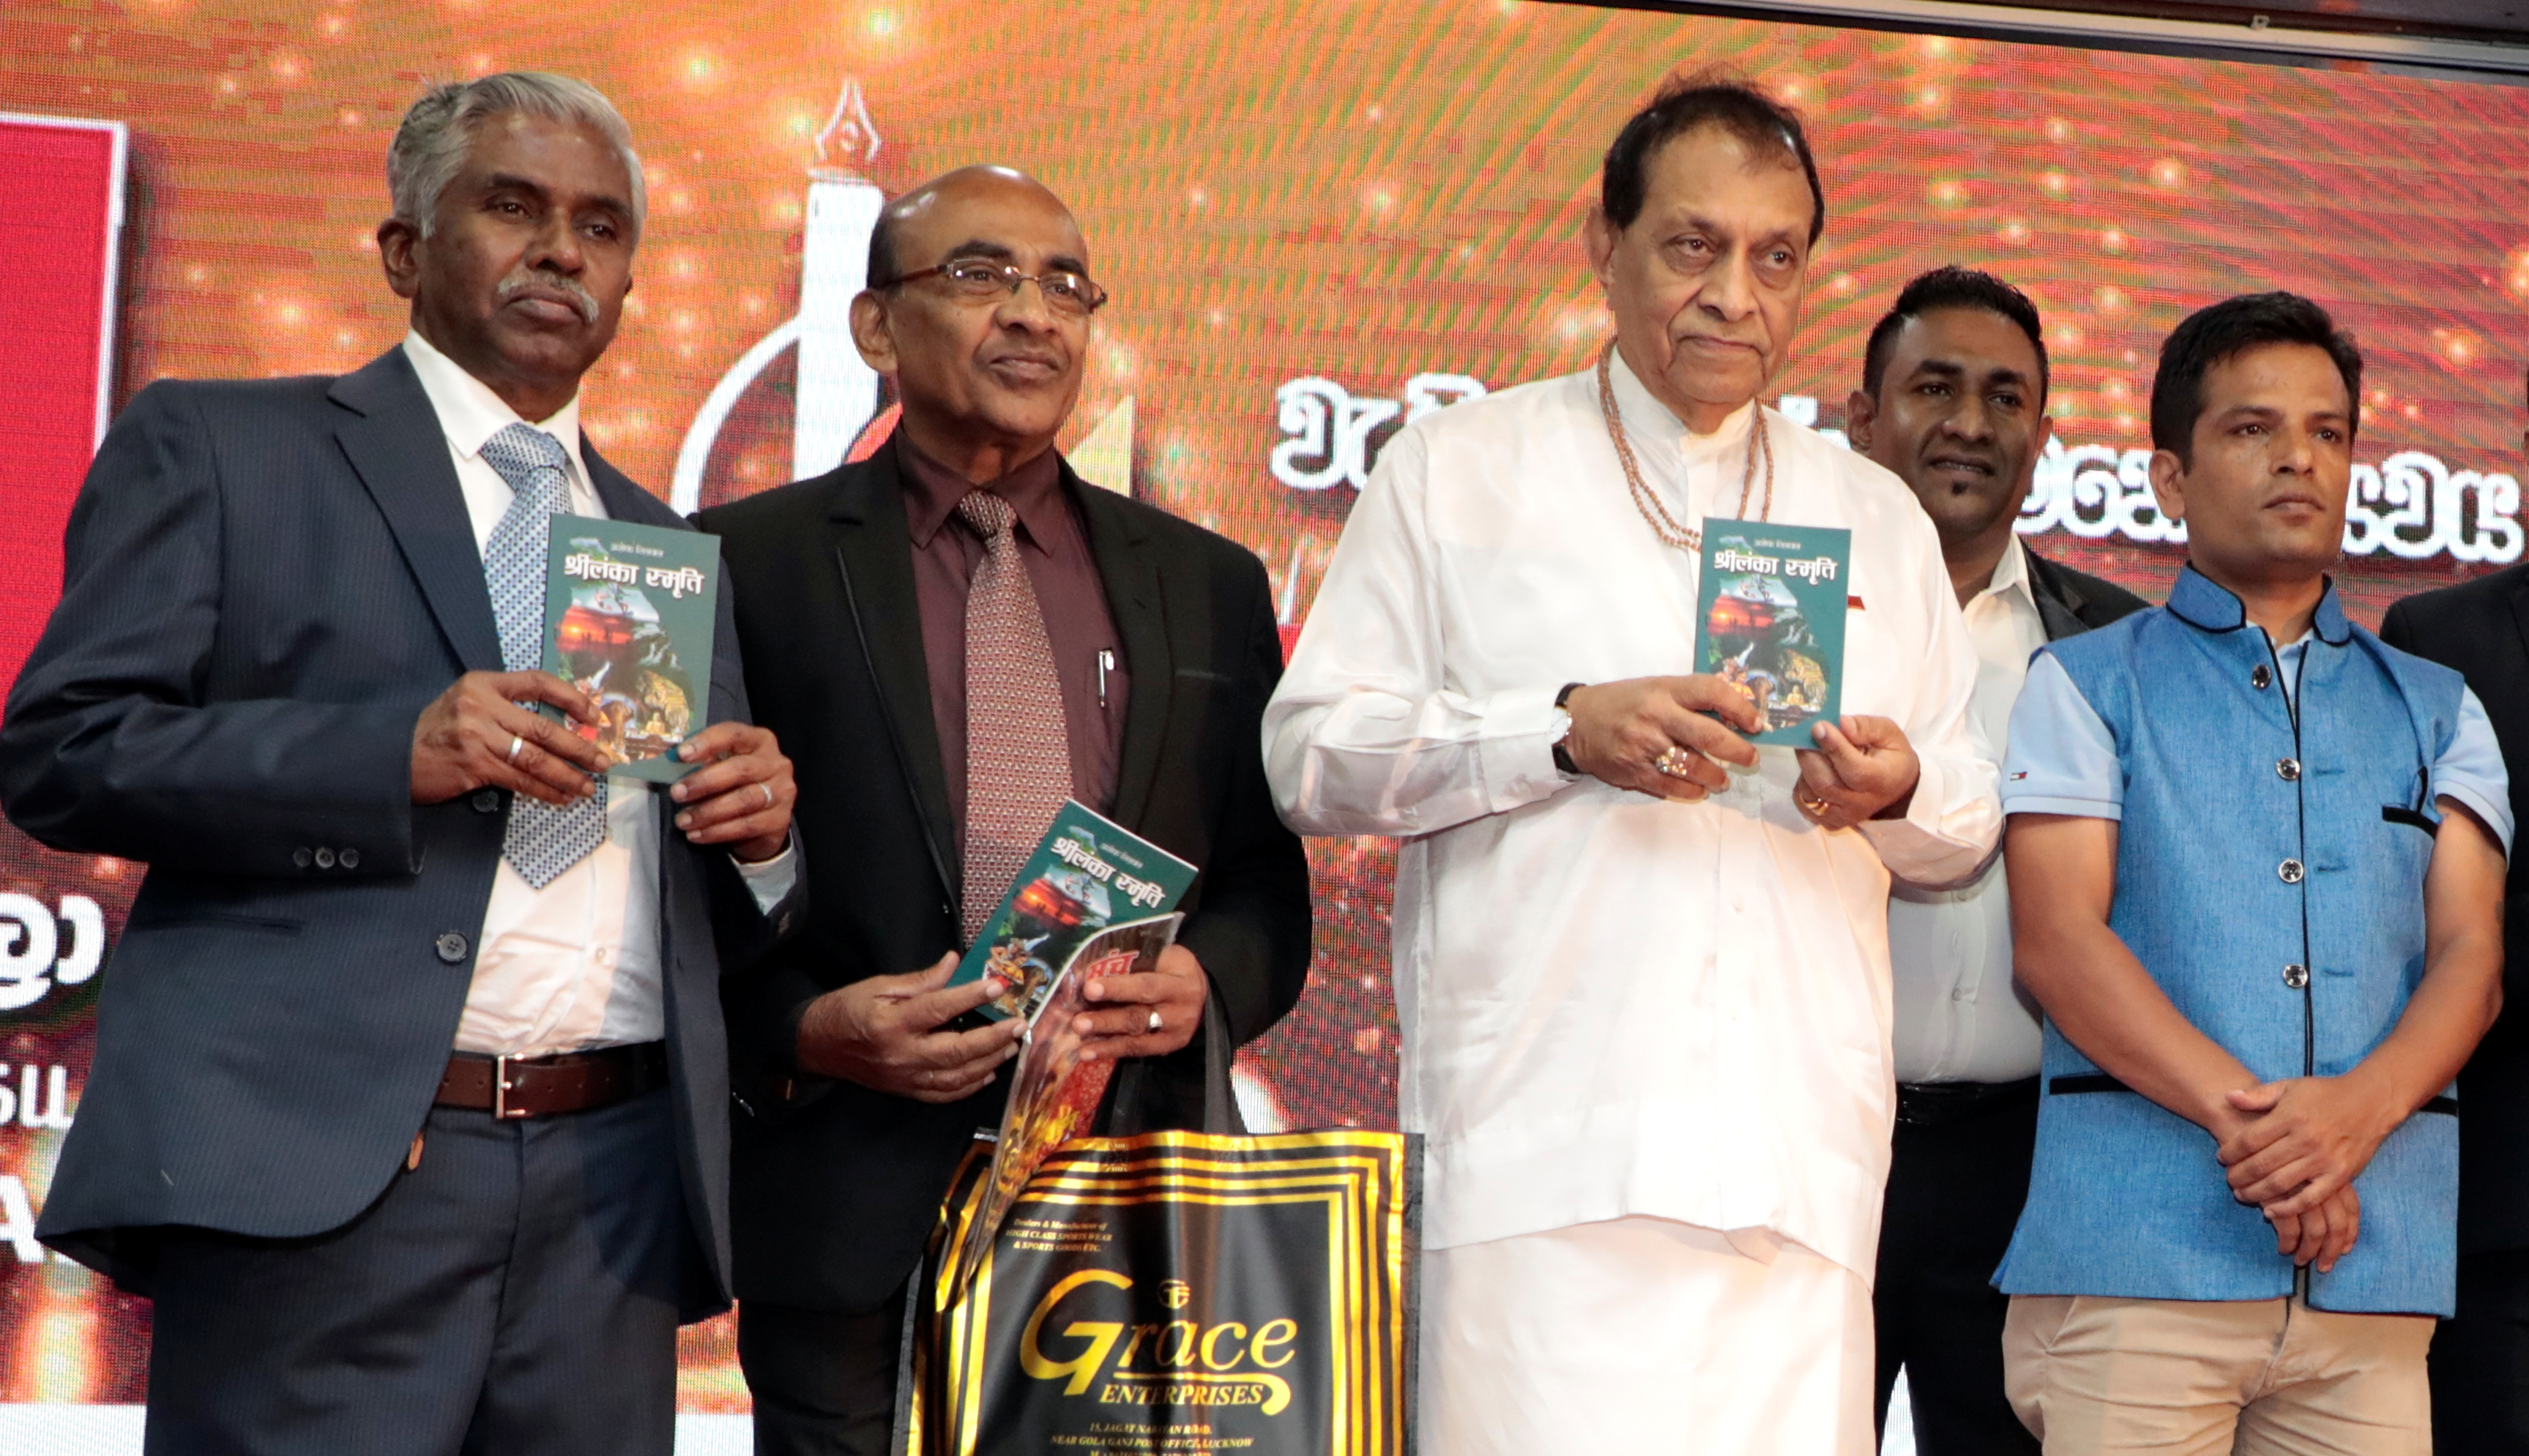 Journalist Ashok Silwal's book launched in Sri Lanka